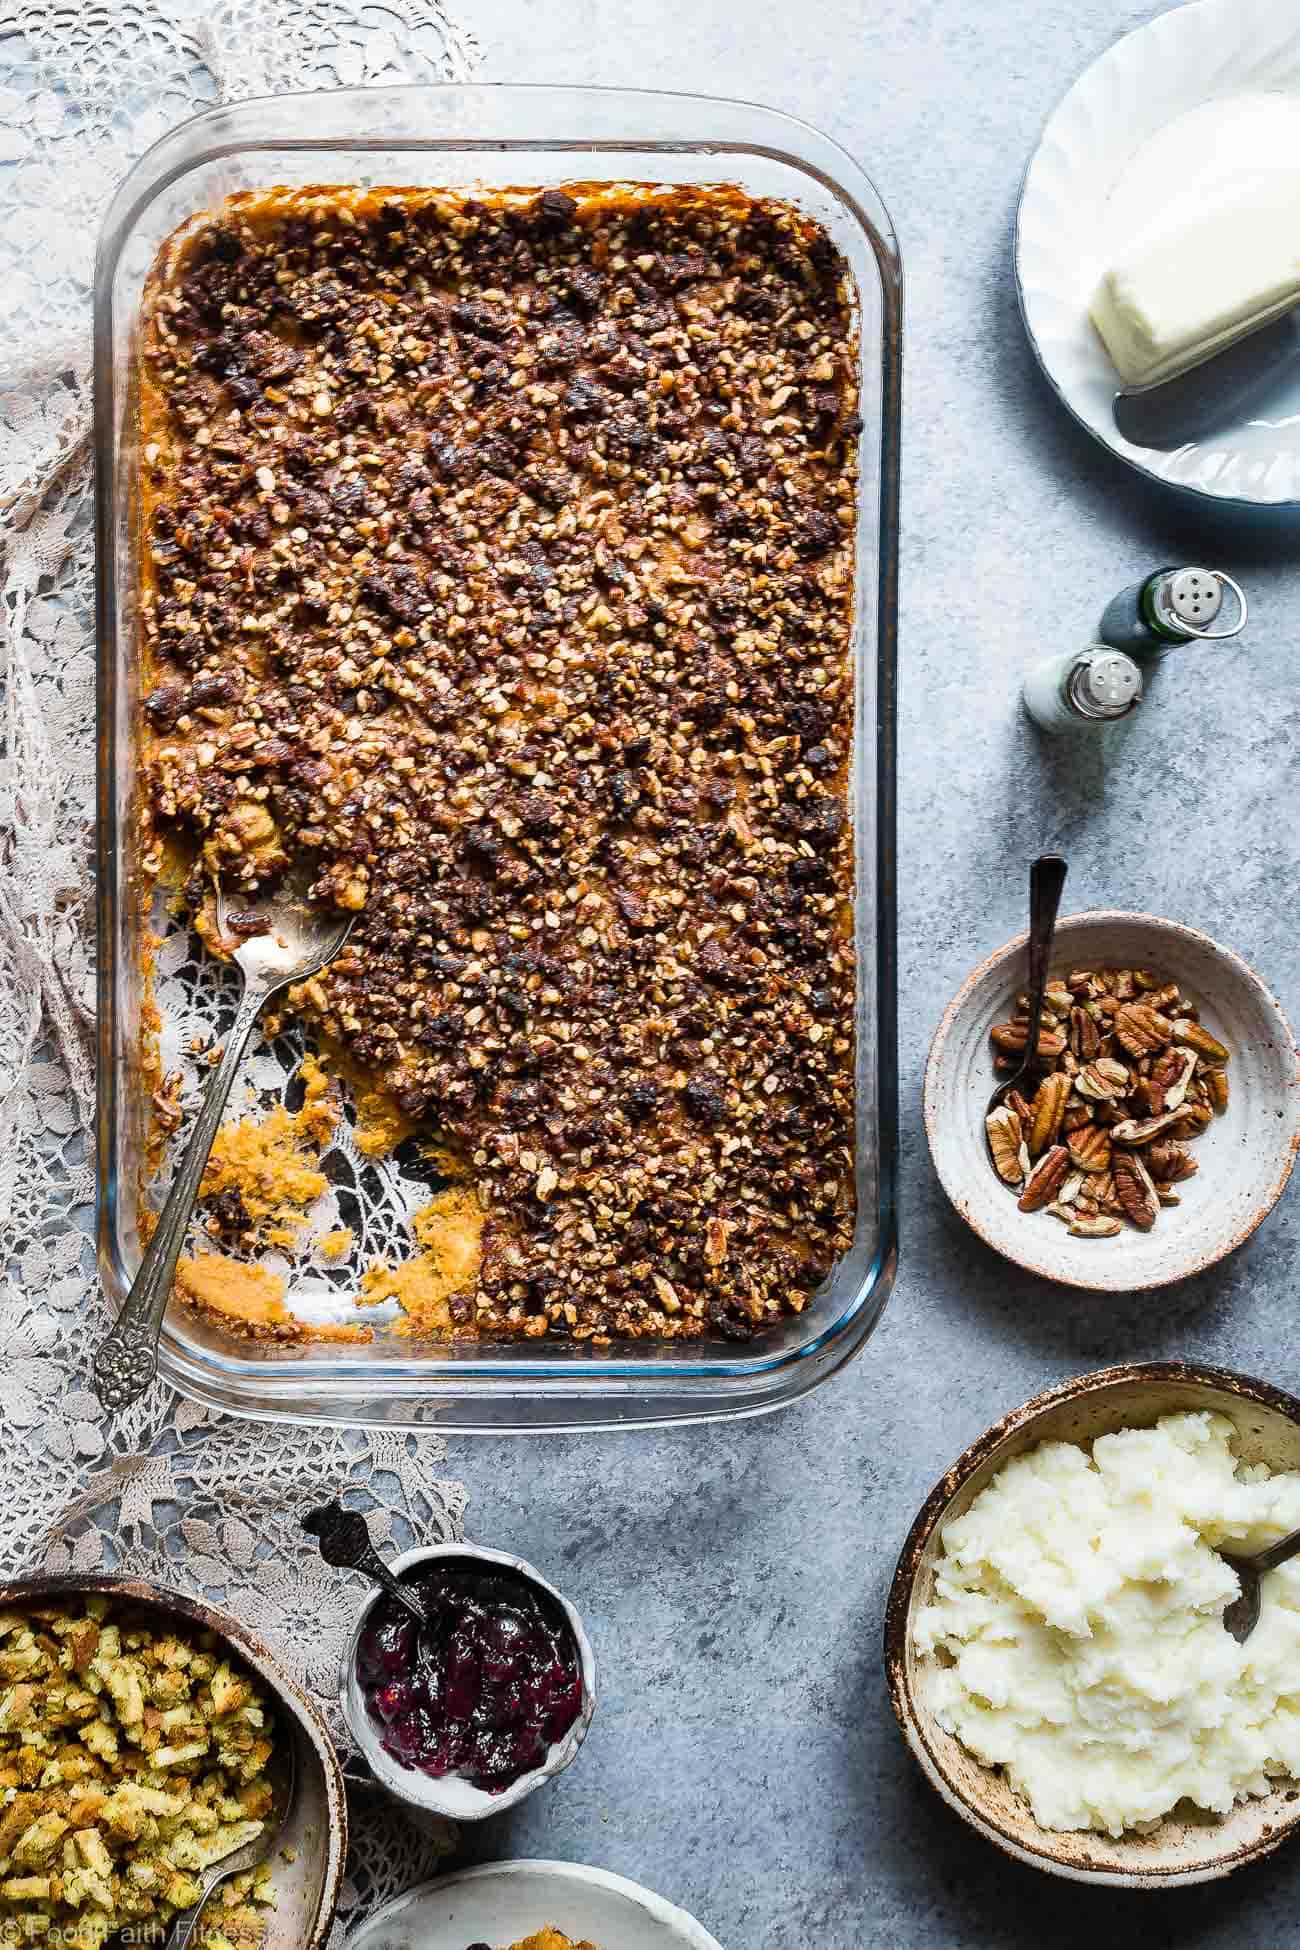 Paleo Easy Healthy Sweet Potato Casserole with Pecan Topping - This recipe for sweet potato casserole is the best side dish for Thanksgiving! No one will believe it's vegan friendly, whole30 compliant and gluten/grain/dairy/sugar AND egg free! | Foodfaithfitness.com | @FoodFaithFit